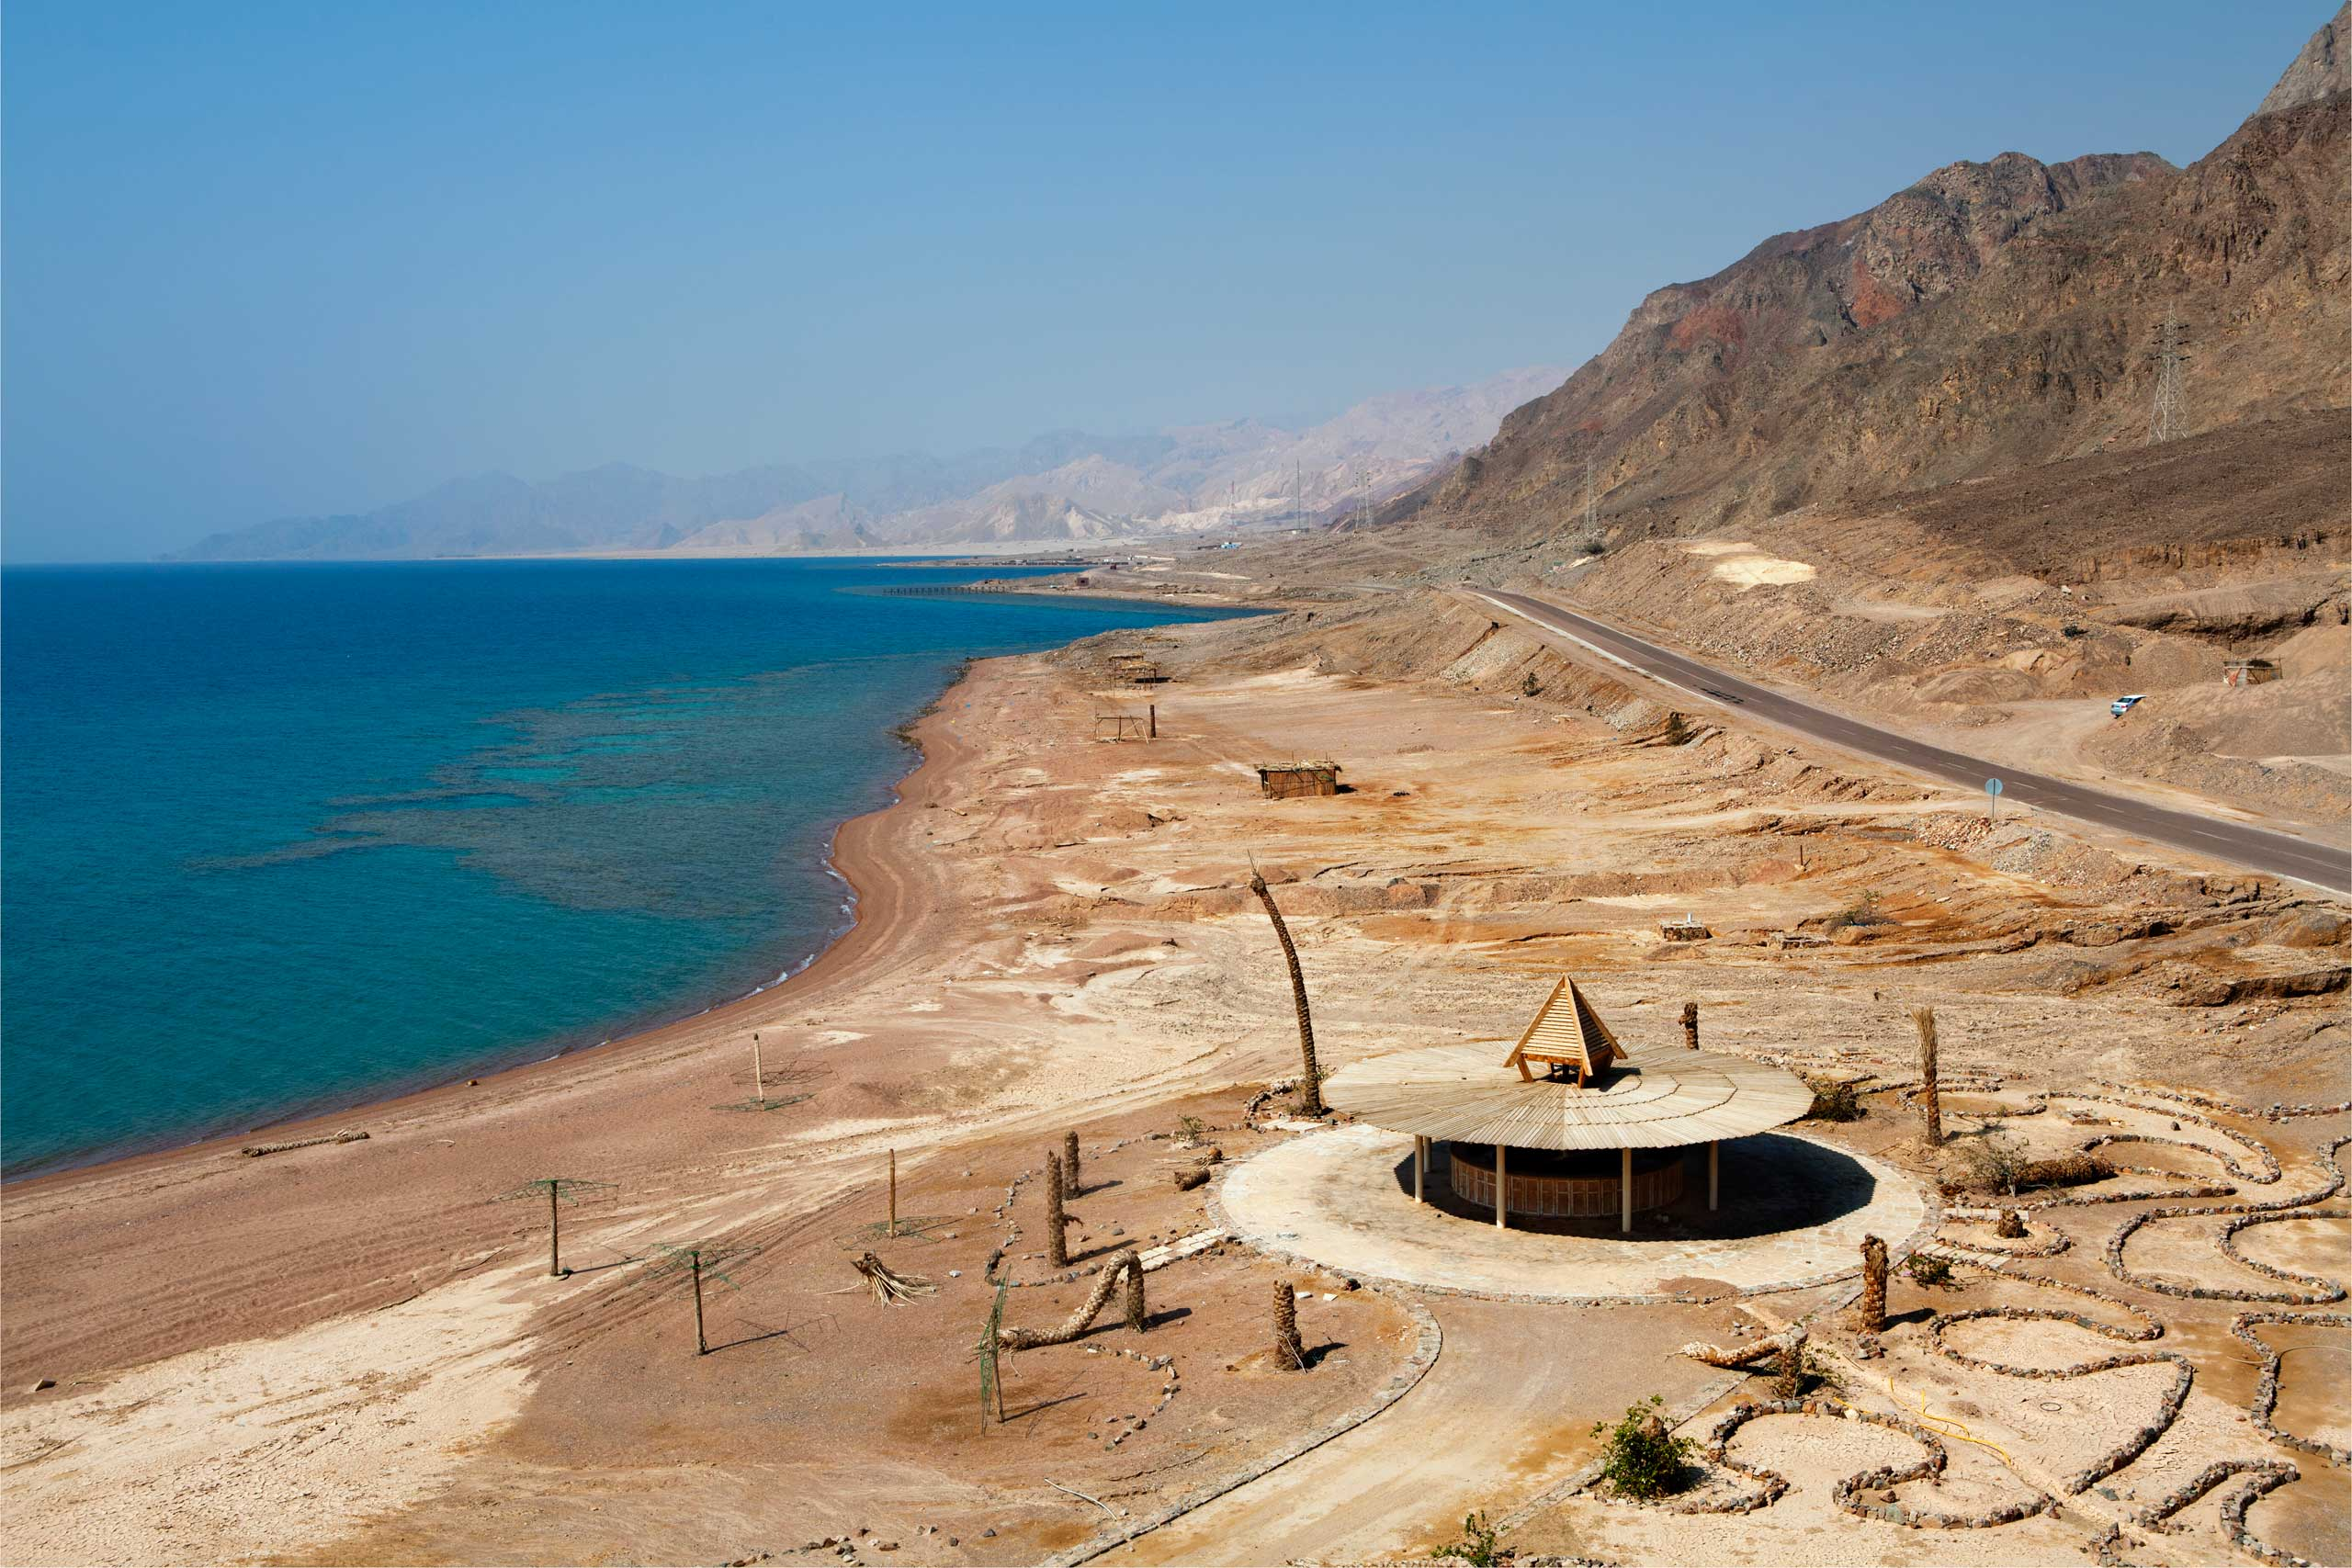 Seaside resort left unfinished and abandoned in Taba, Sinai, July 2014.